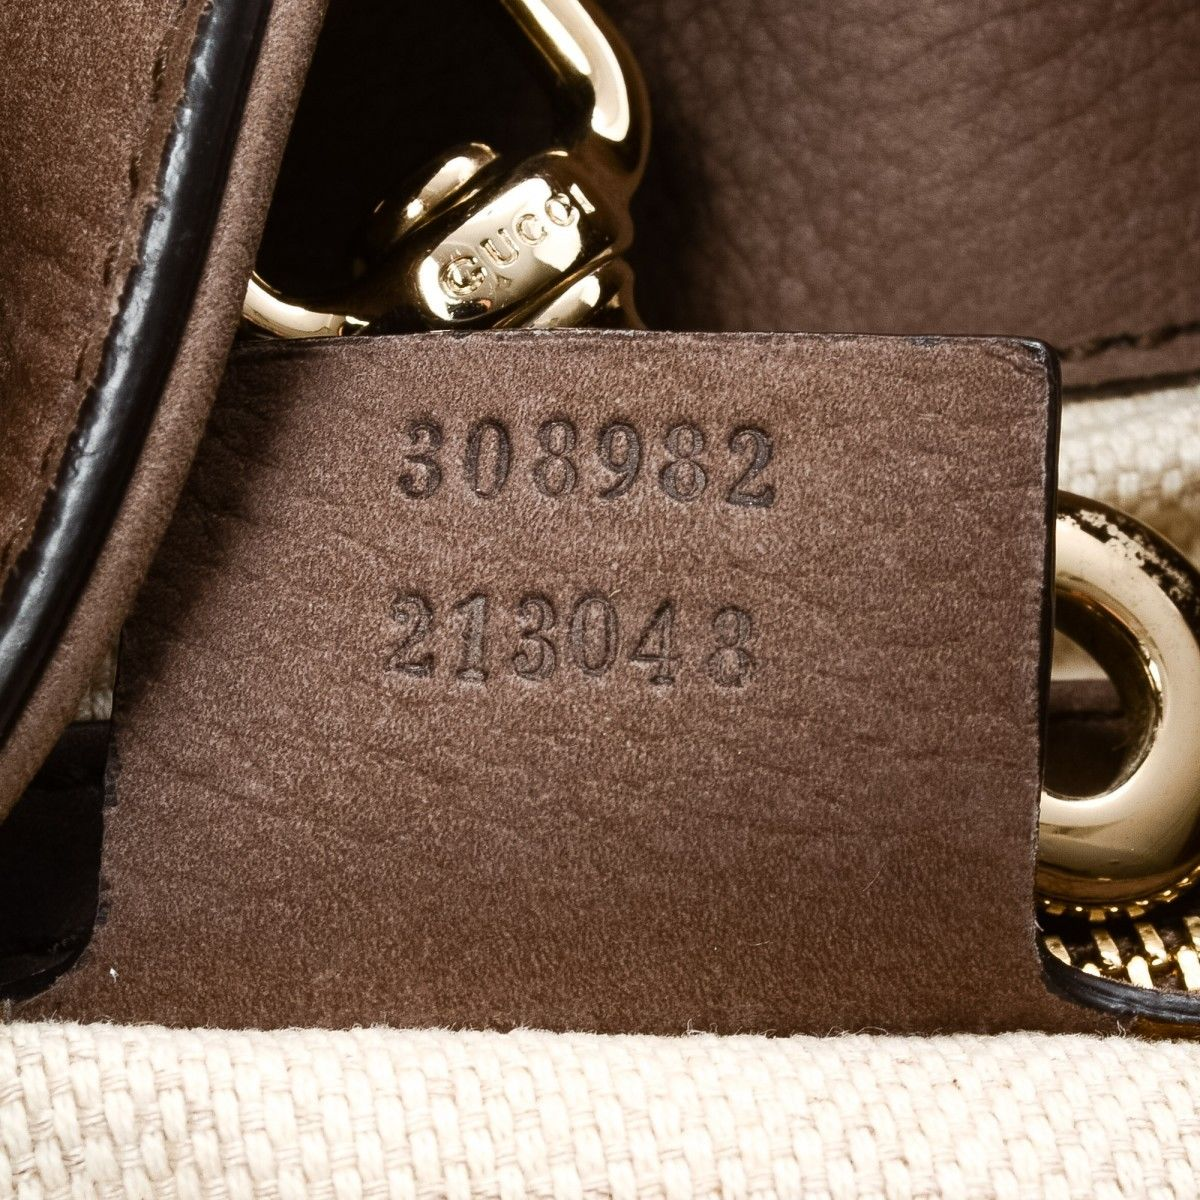 80ac6b6998c Gucci Soho Tote Bag. The authenticity of this vintage Gucci Soho shoulder  bag is guaranteed by LXRandCo. This chic purse comes in luxurious leather.